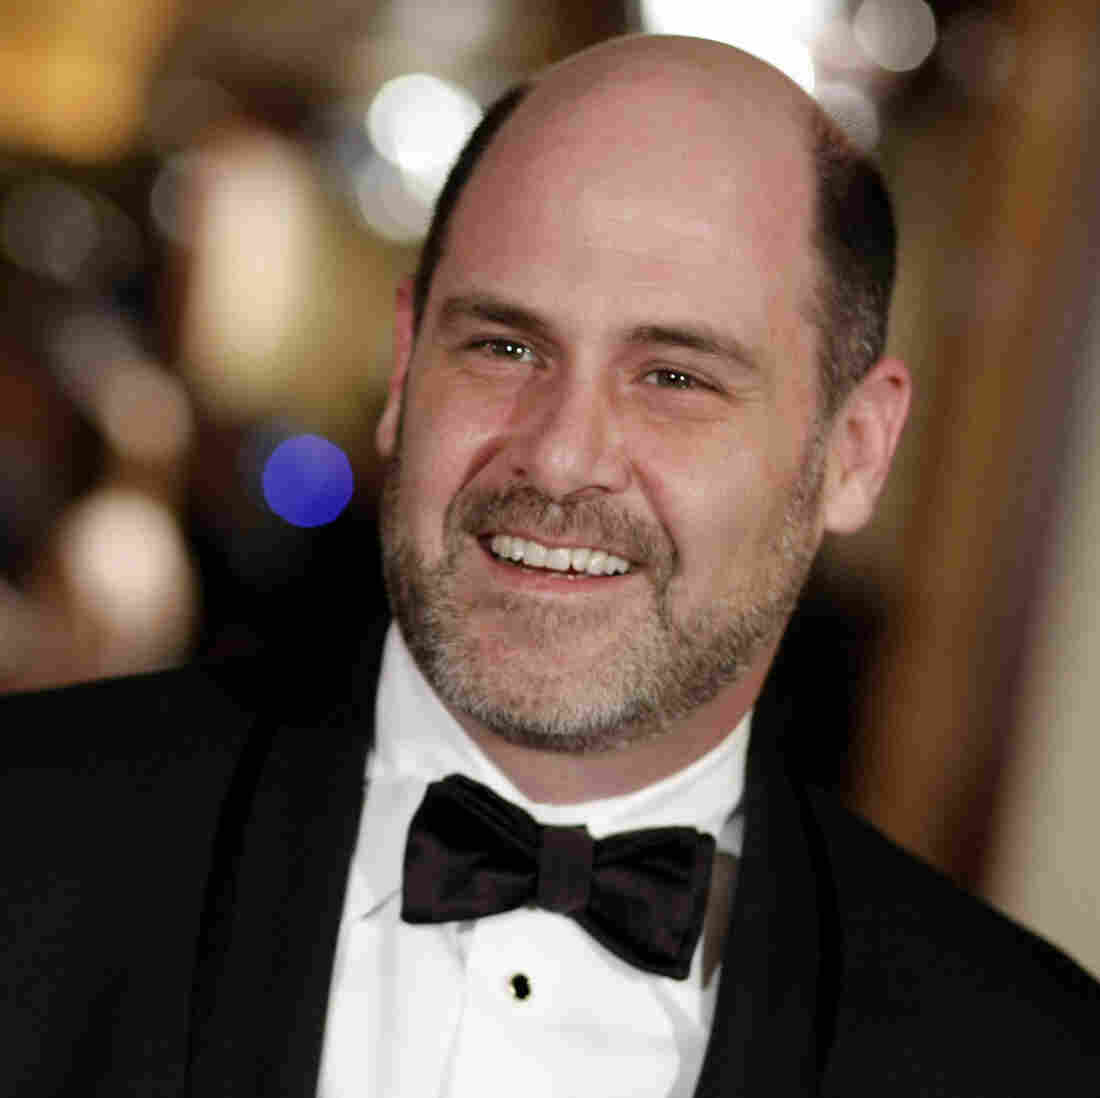 Not My Job: 'Mad Men' Creator Matthew Weiner Gets Quizzed On Glad Men